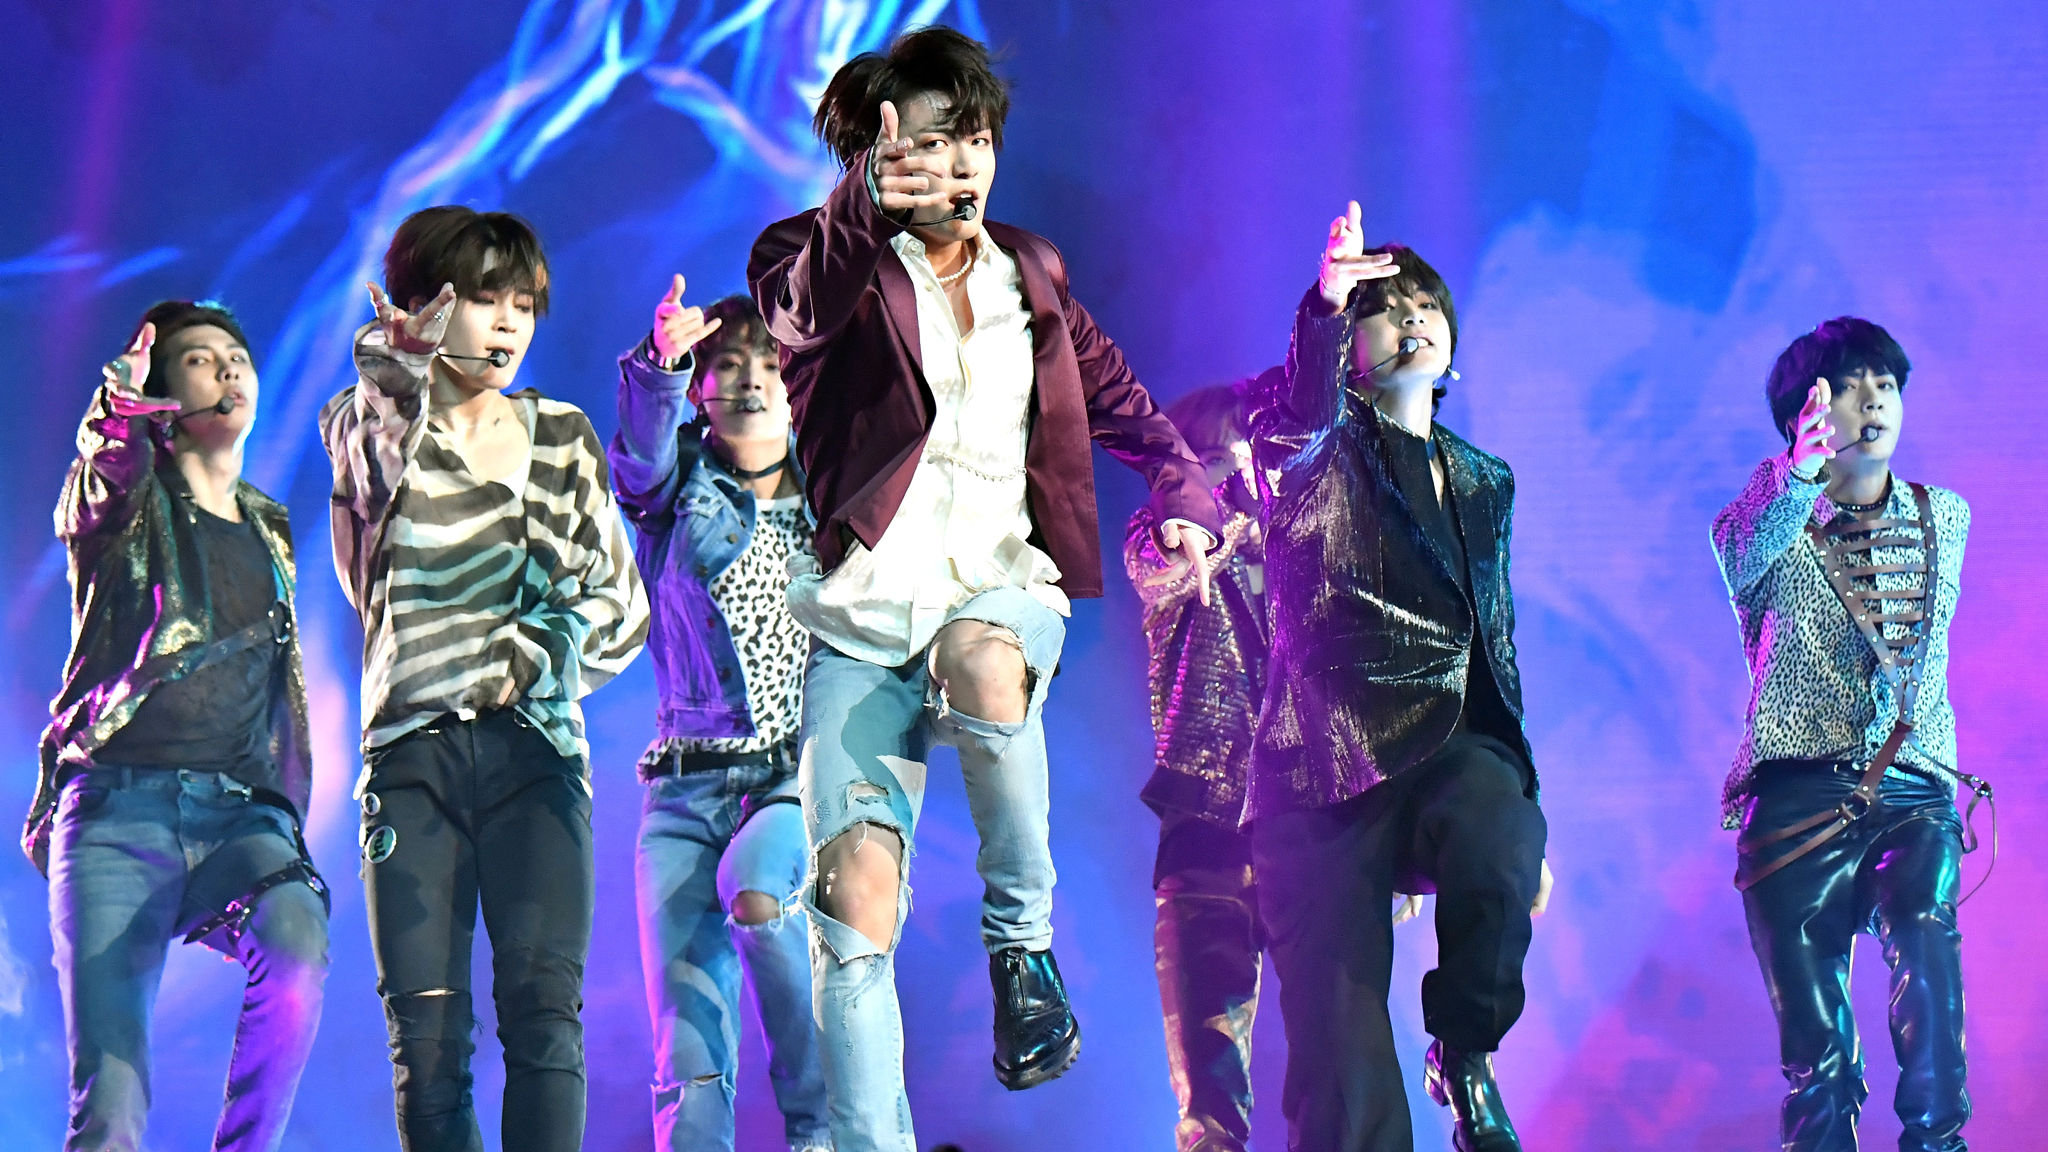 South Korean boyband BTS's new album, Map of the Soul Persona, is ...